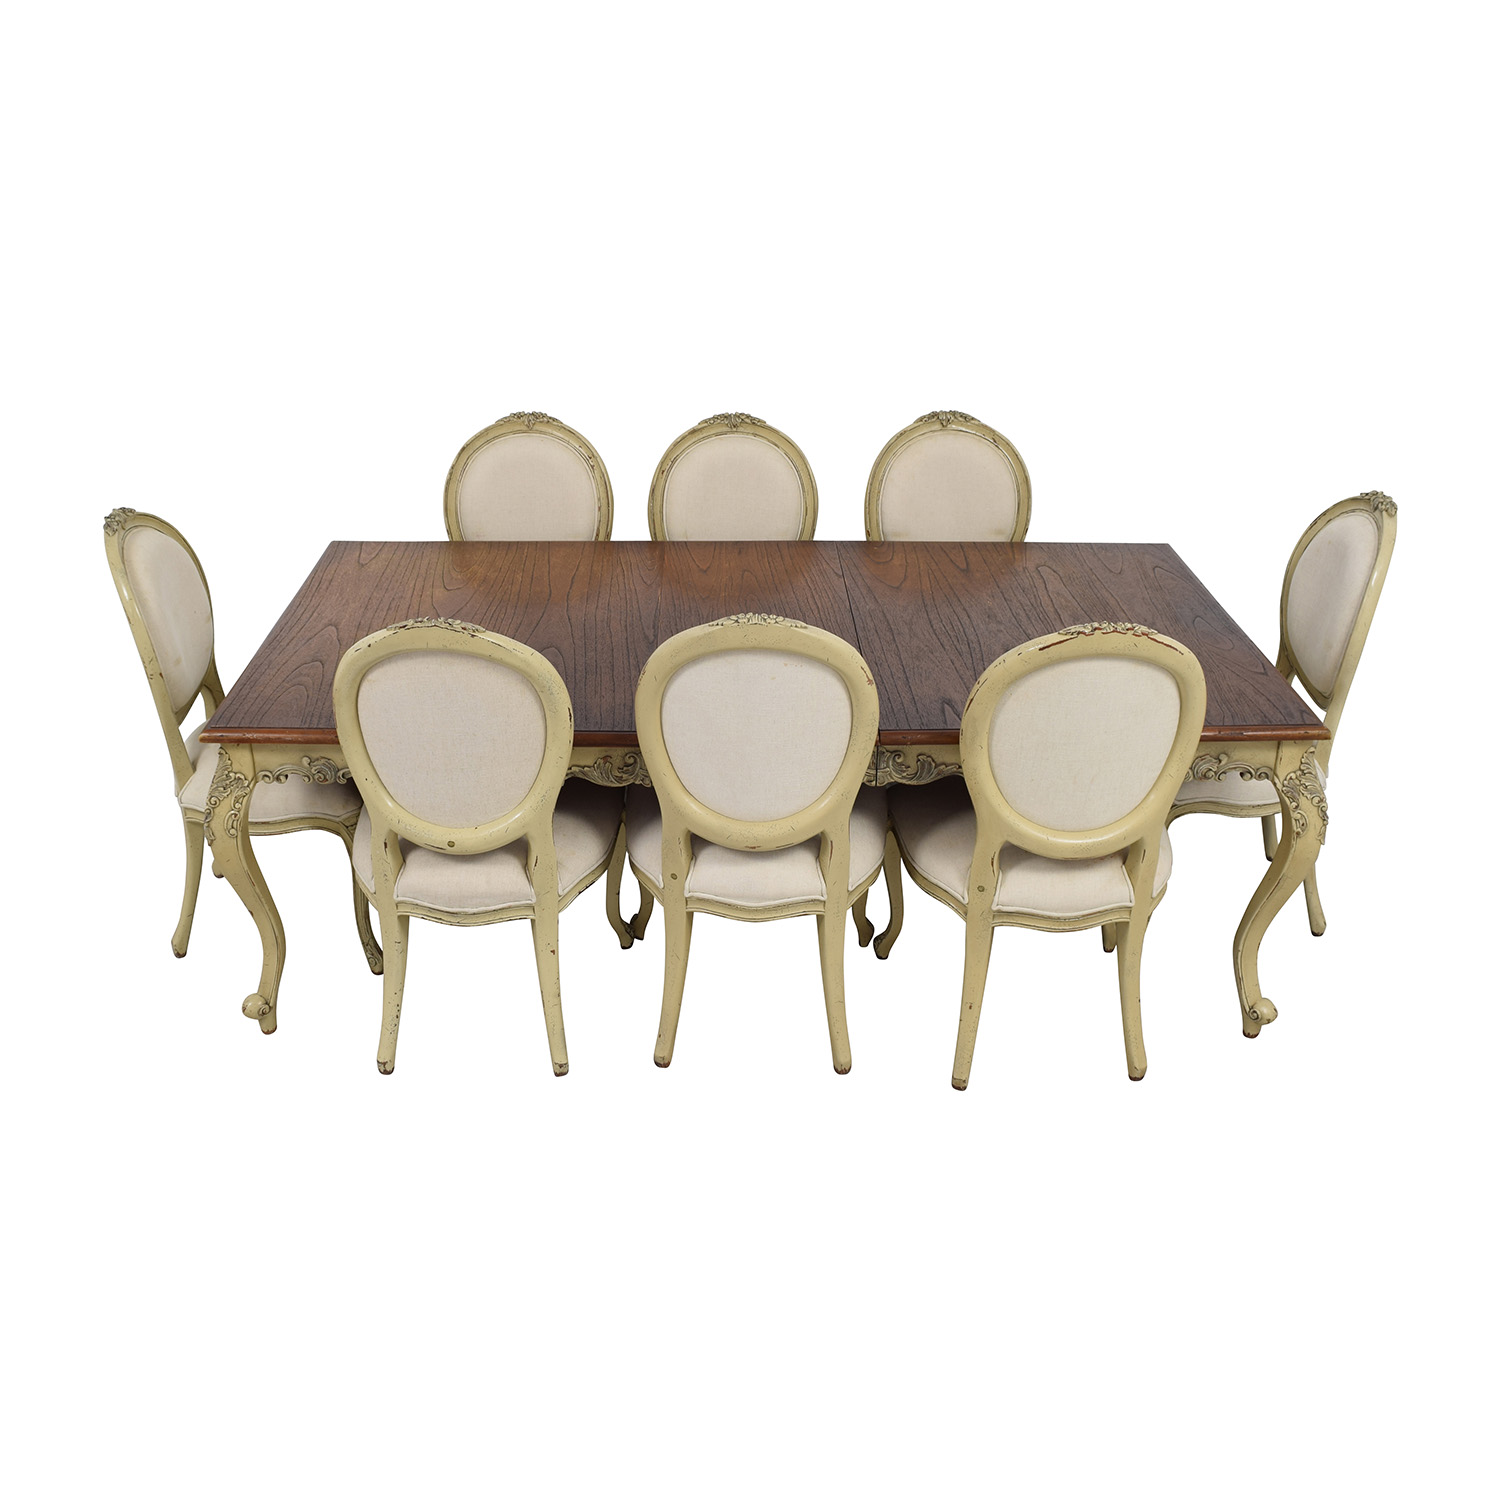 Custom Built Wood Dining Table with Chairs sale